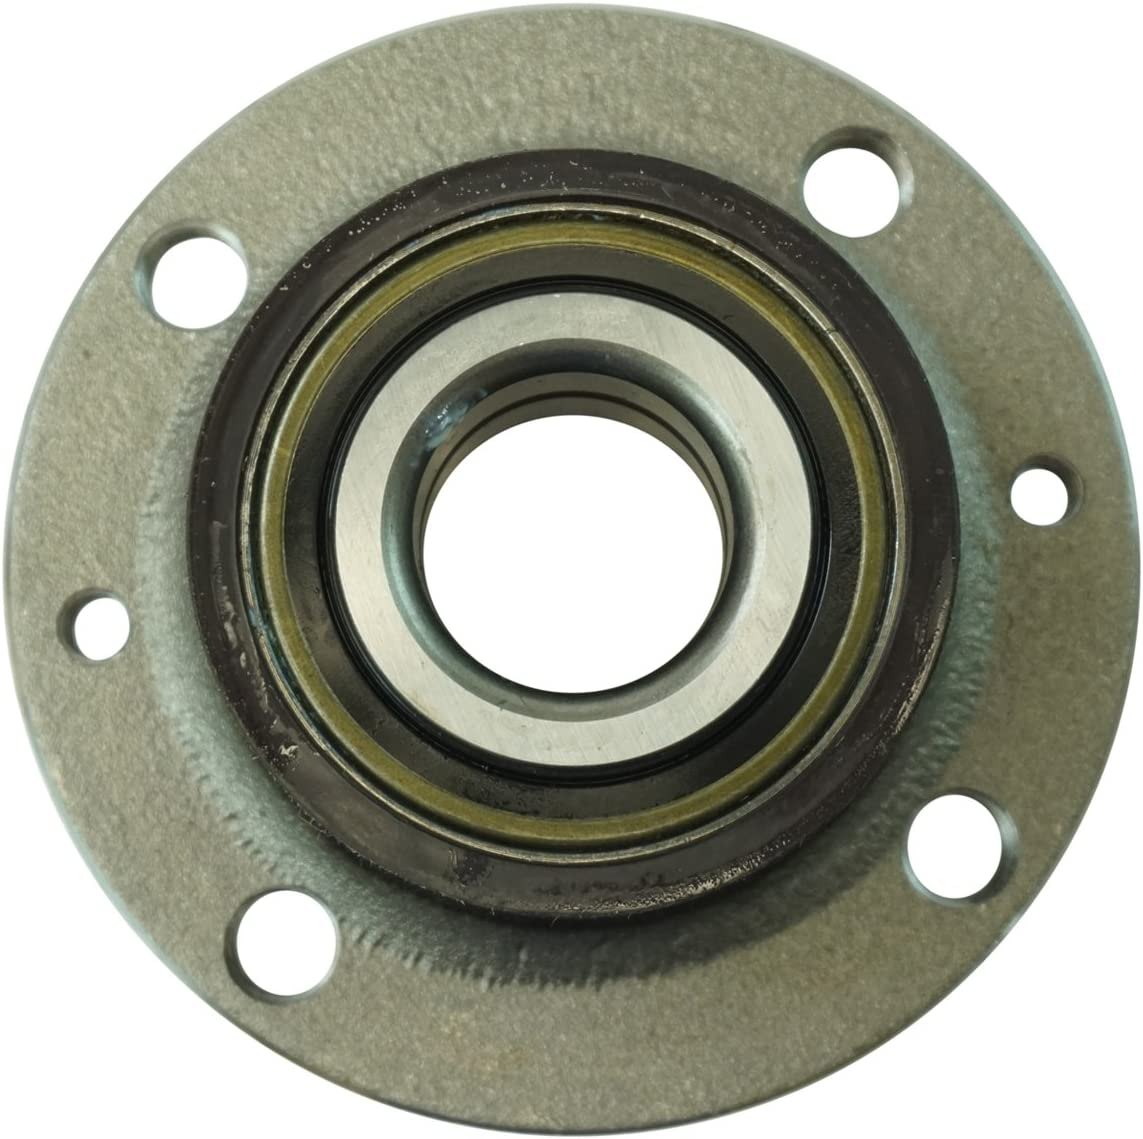 Driver or Passenger Side Rear Wheel Bearing Hub Assembly for Fiat 500